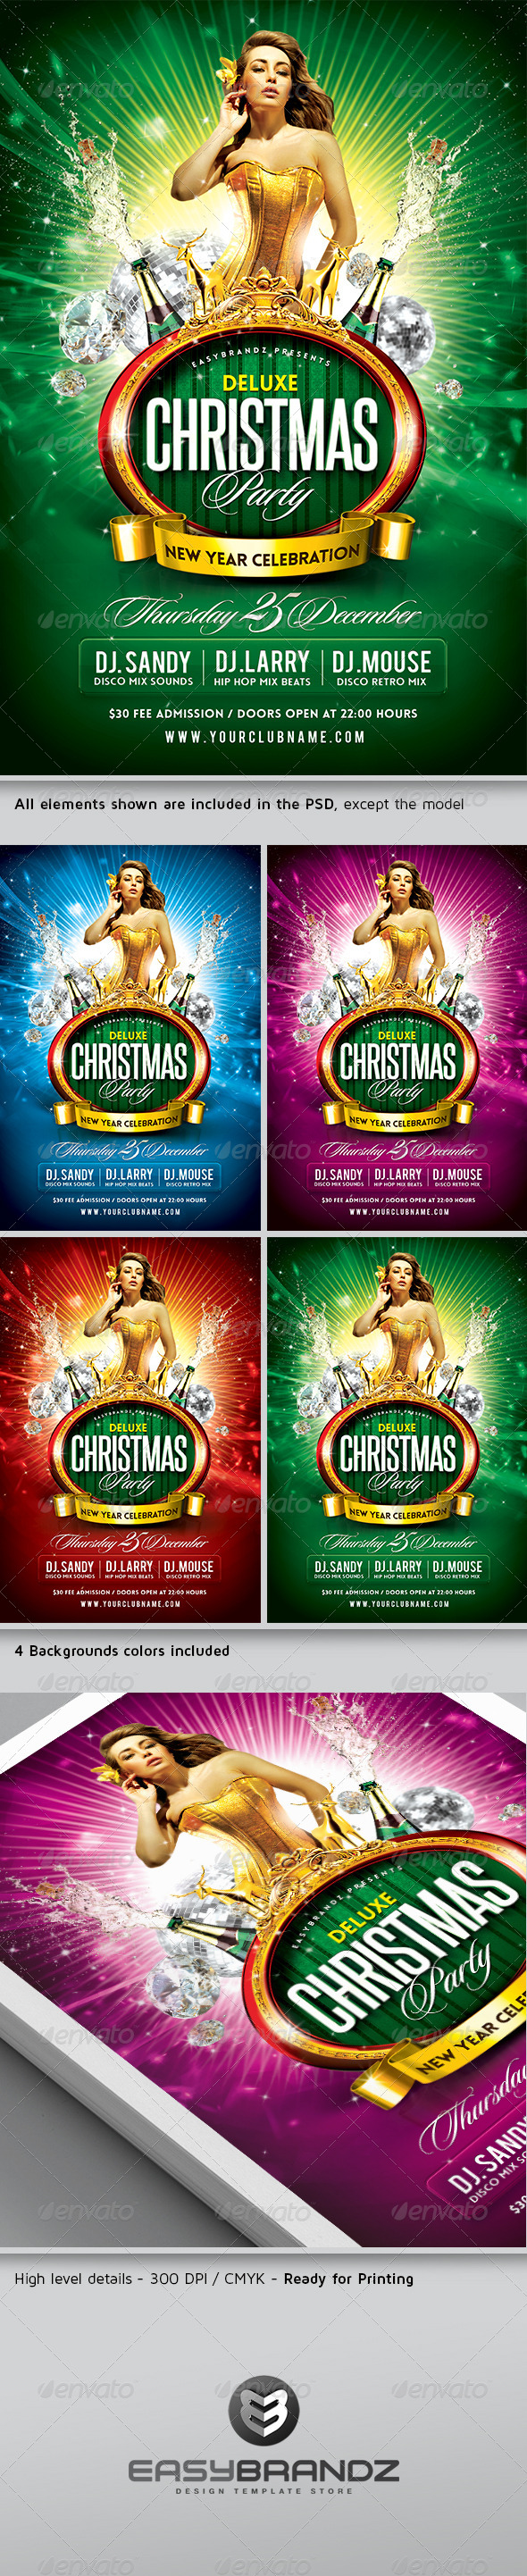 Deluxe Christmas Party Flyer Template - Holidays Events